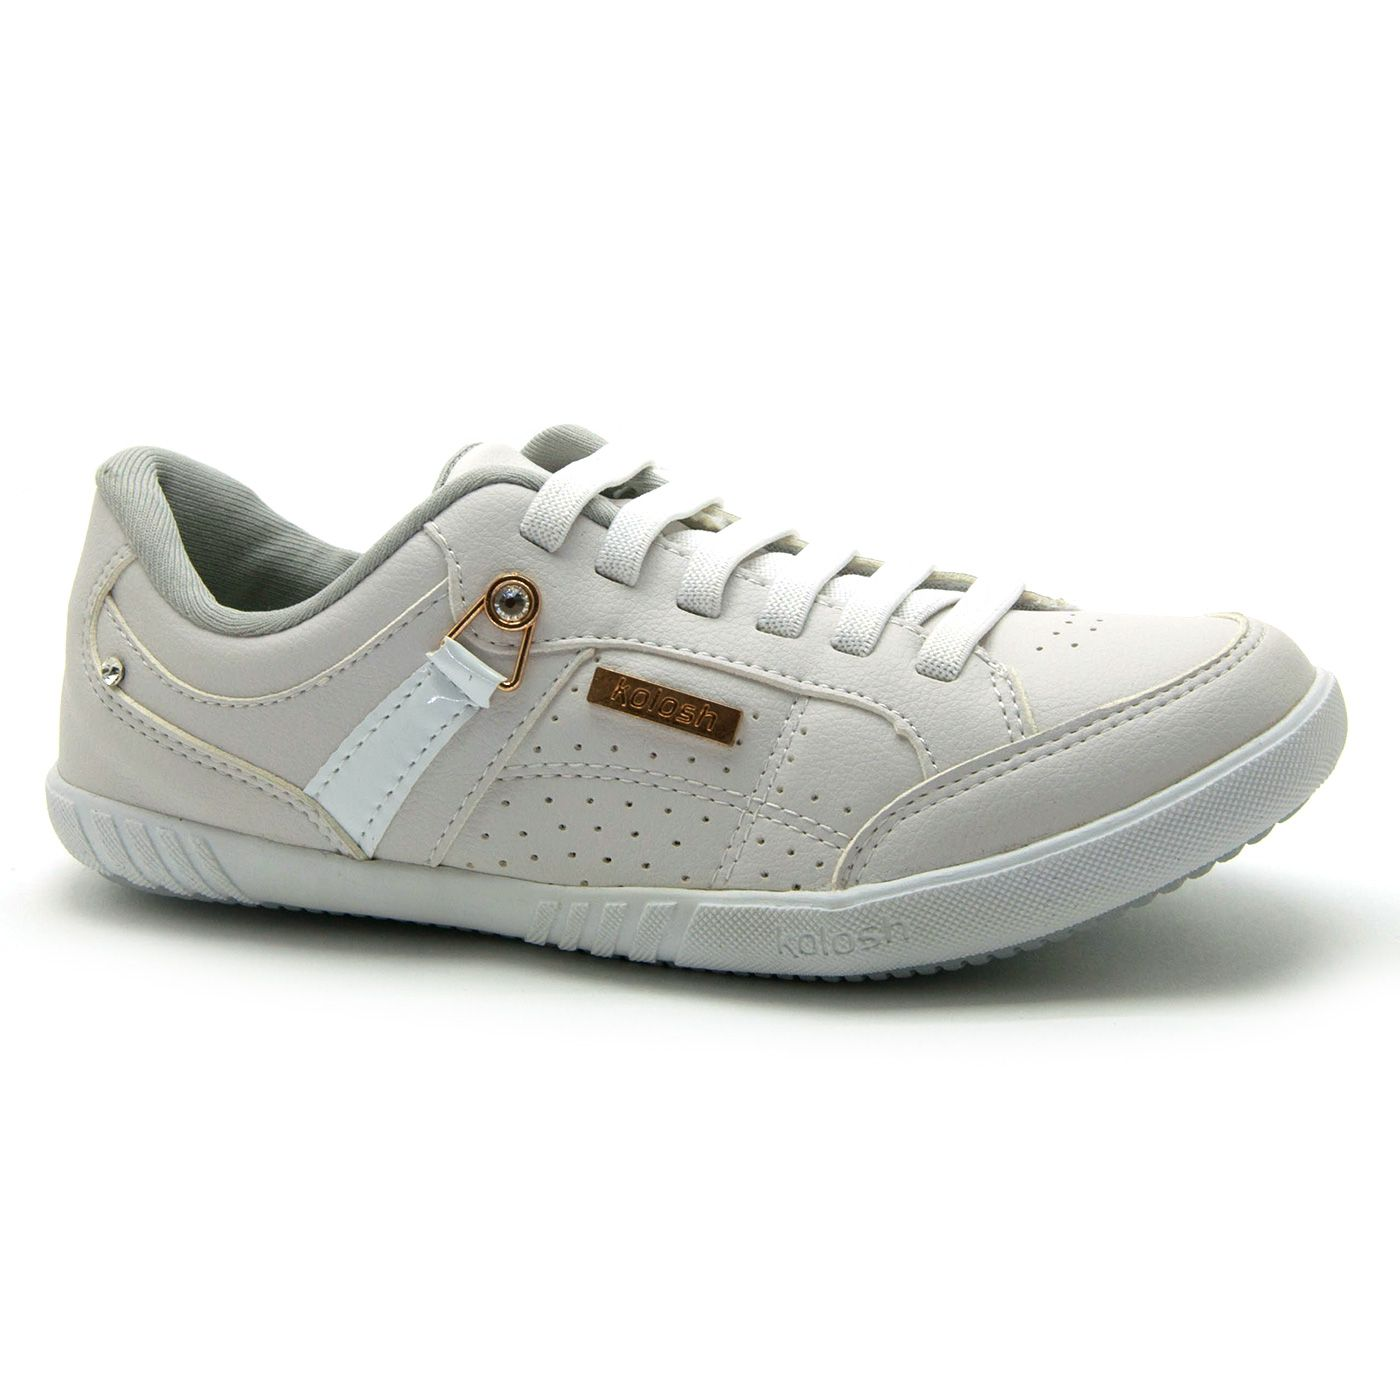 TENIS KOLOSH HOUSTON - C0111A